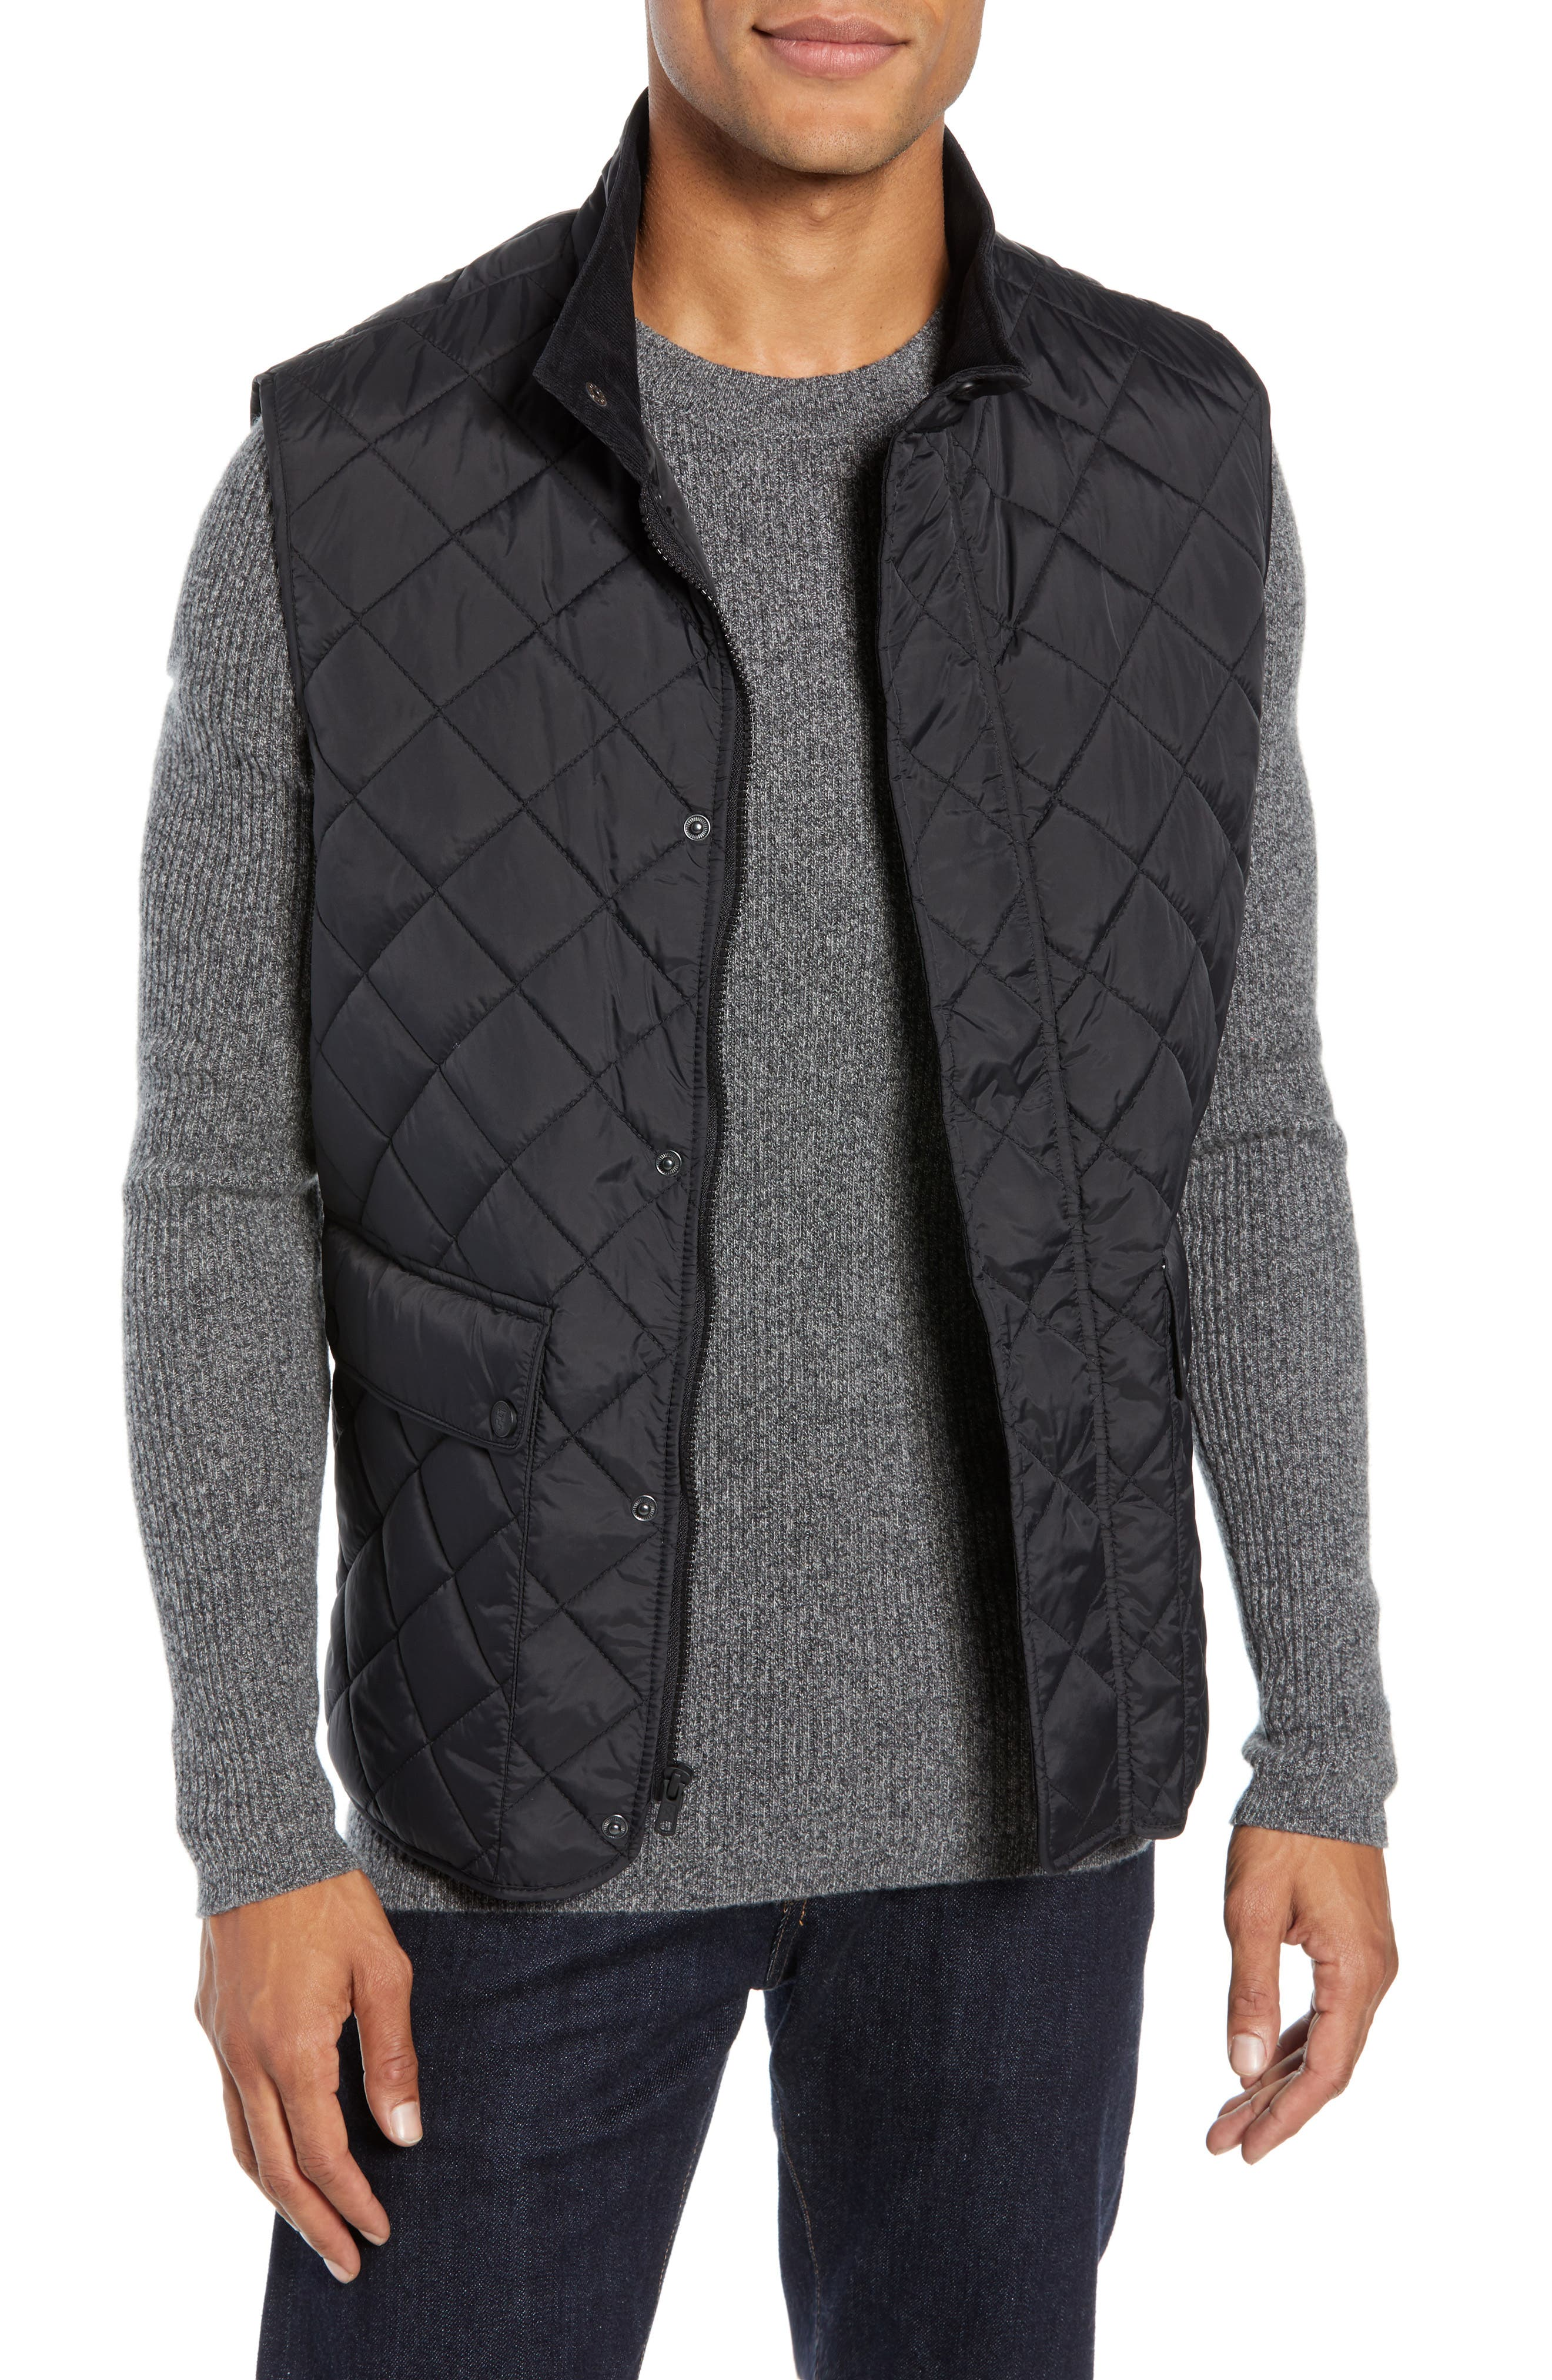 Vince Camuto Diamond Quilted Vest, Black